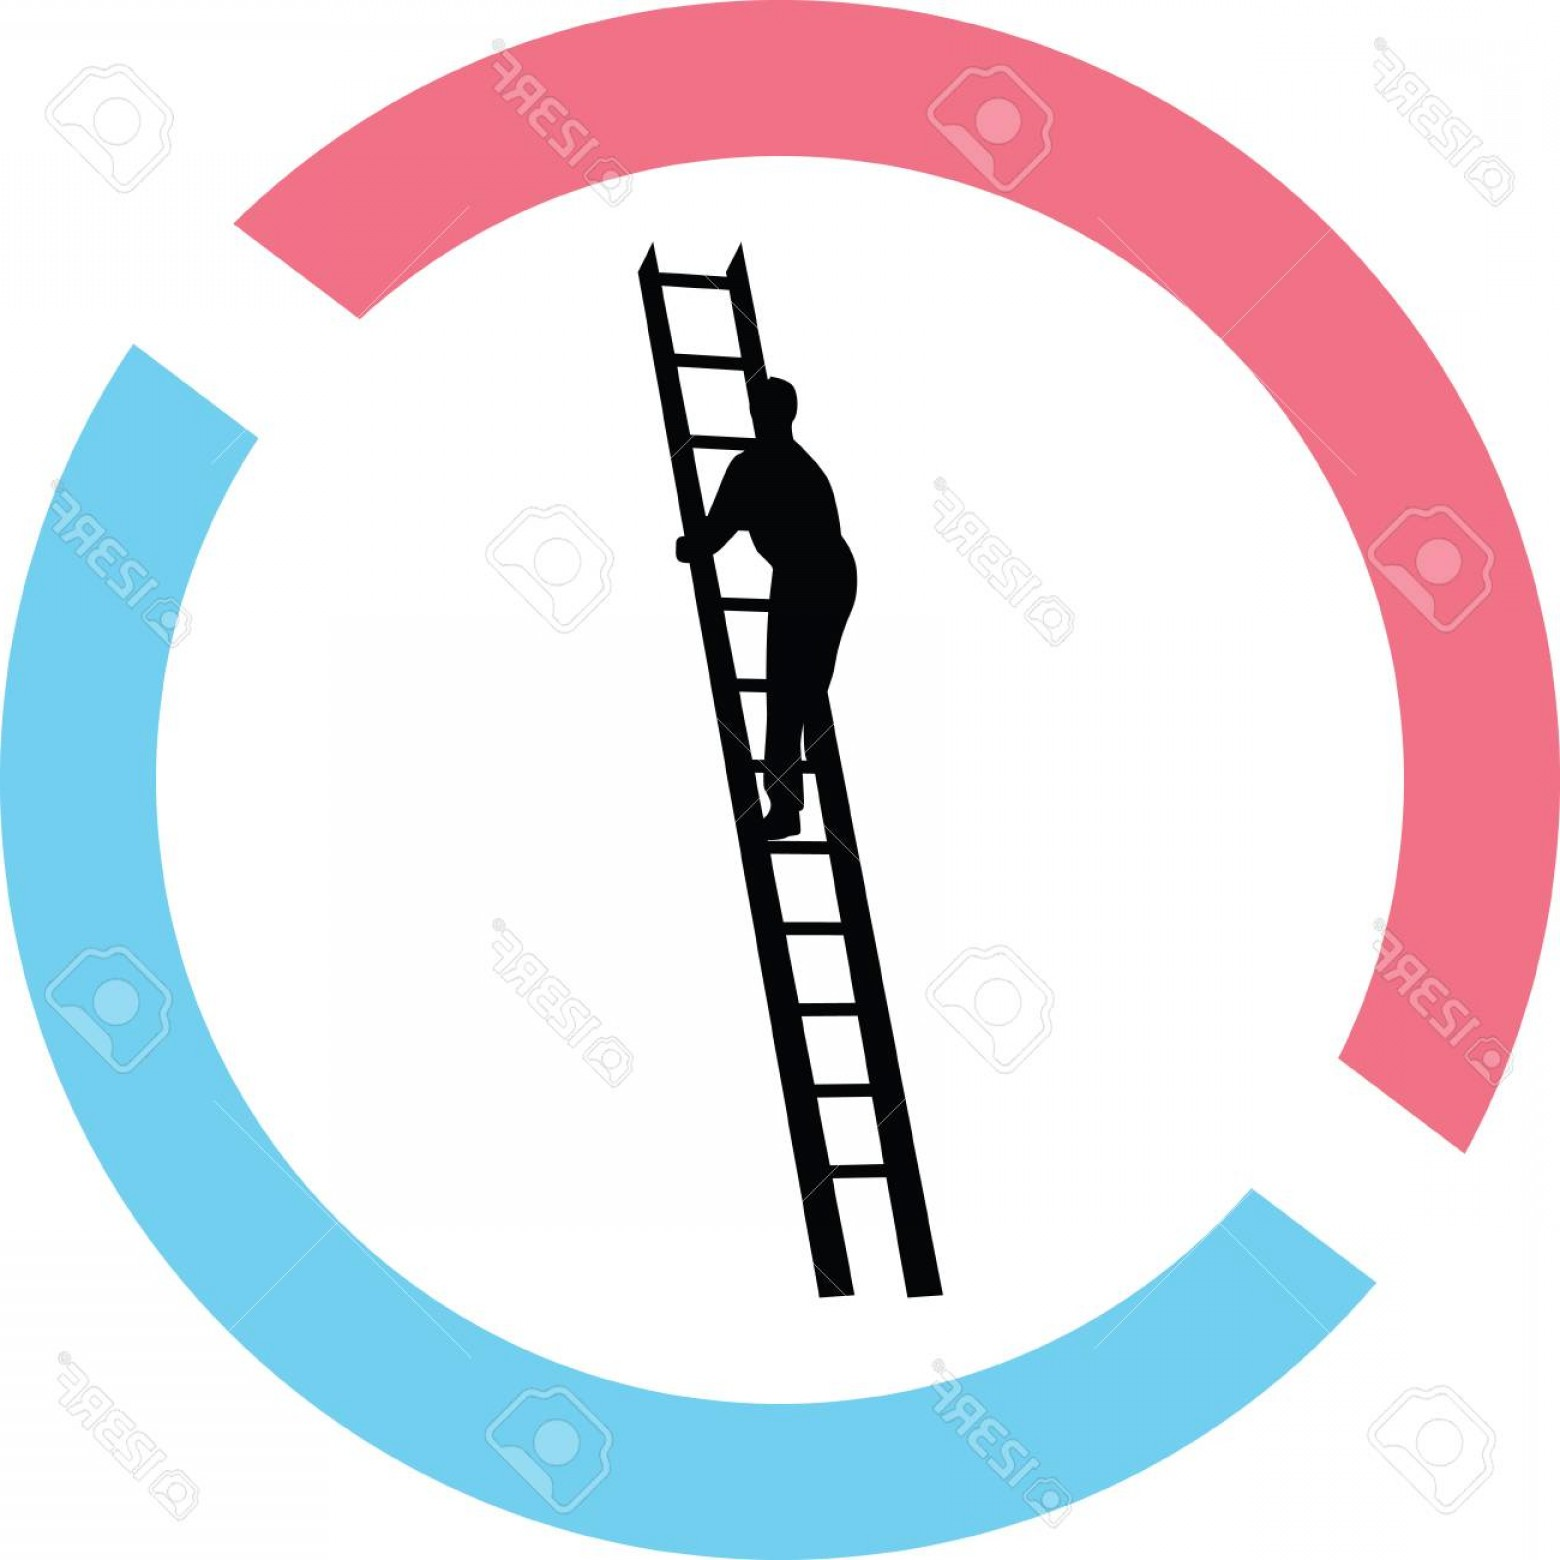 Ladder Silhouette Vector: Photostock Vector Man In Ladder Silhouette In Red And Blue Circle